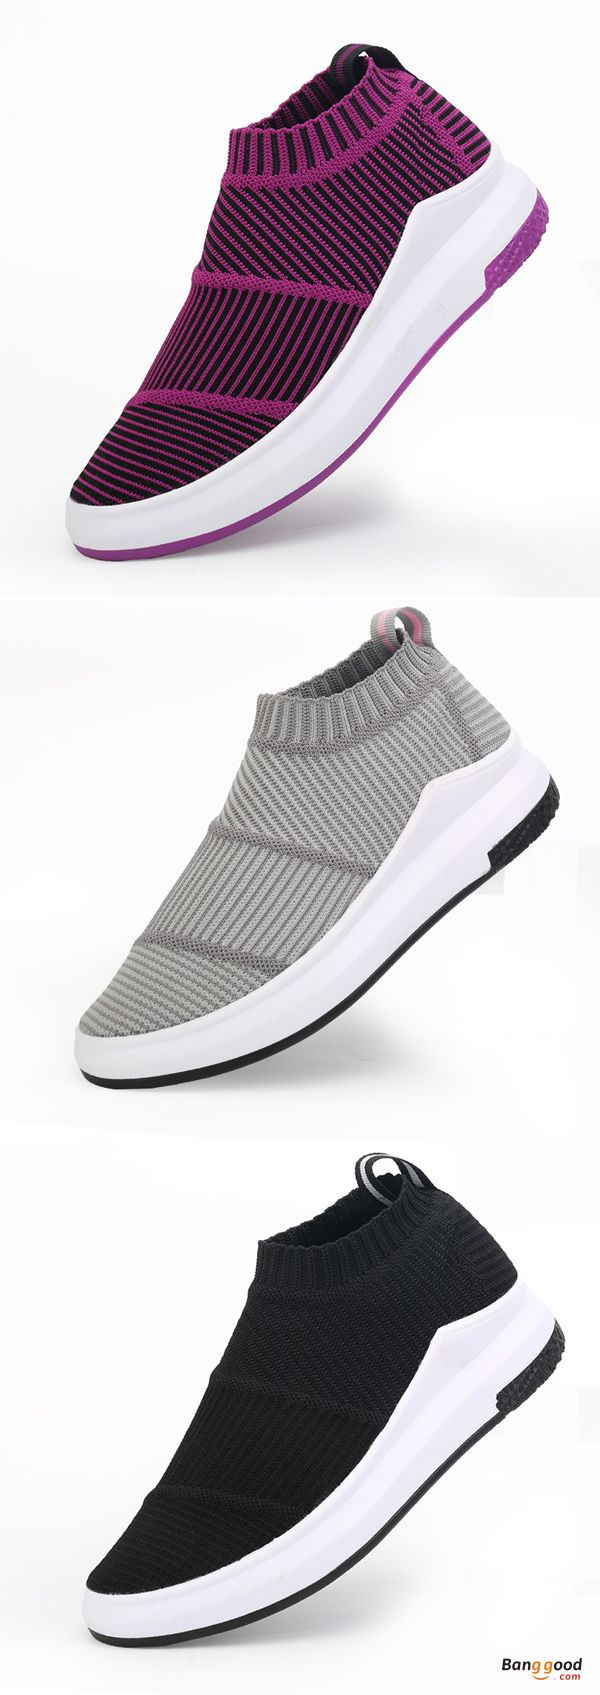 US$29.99 + Free shipping. Size: 5~9. Color: Black, Purple, Light Gray. Fall in love with casual and sport style! Women Weave Stripe High Top Platform Casual Breathable Sport Shoes.